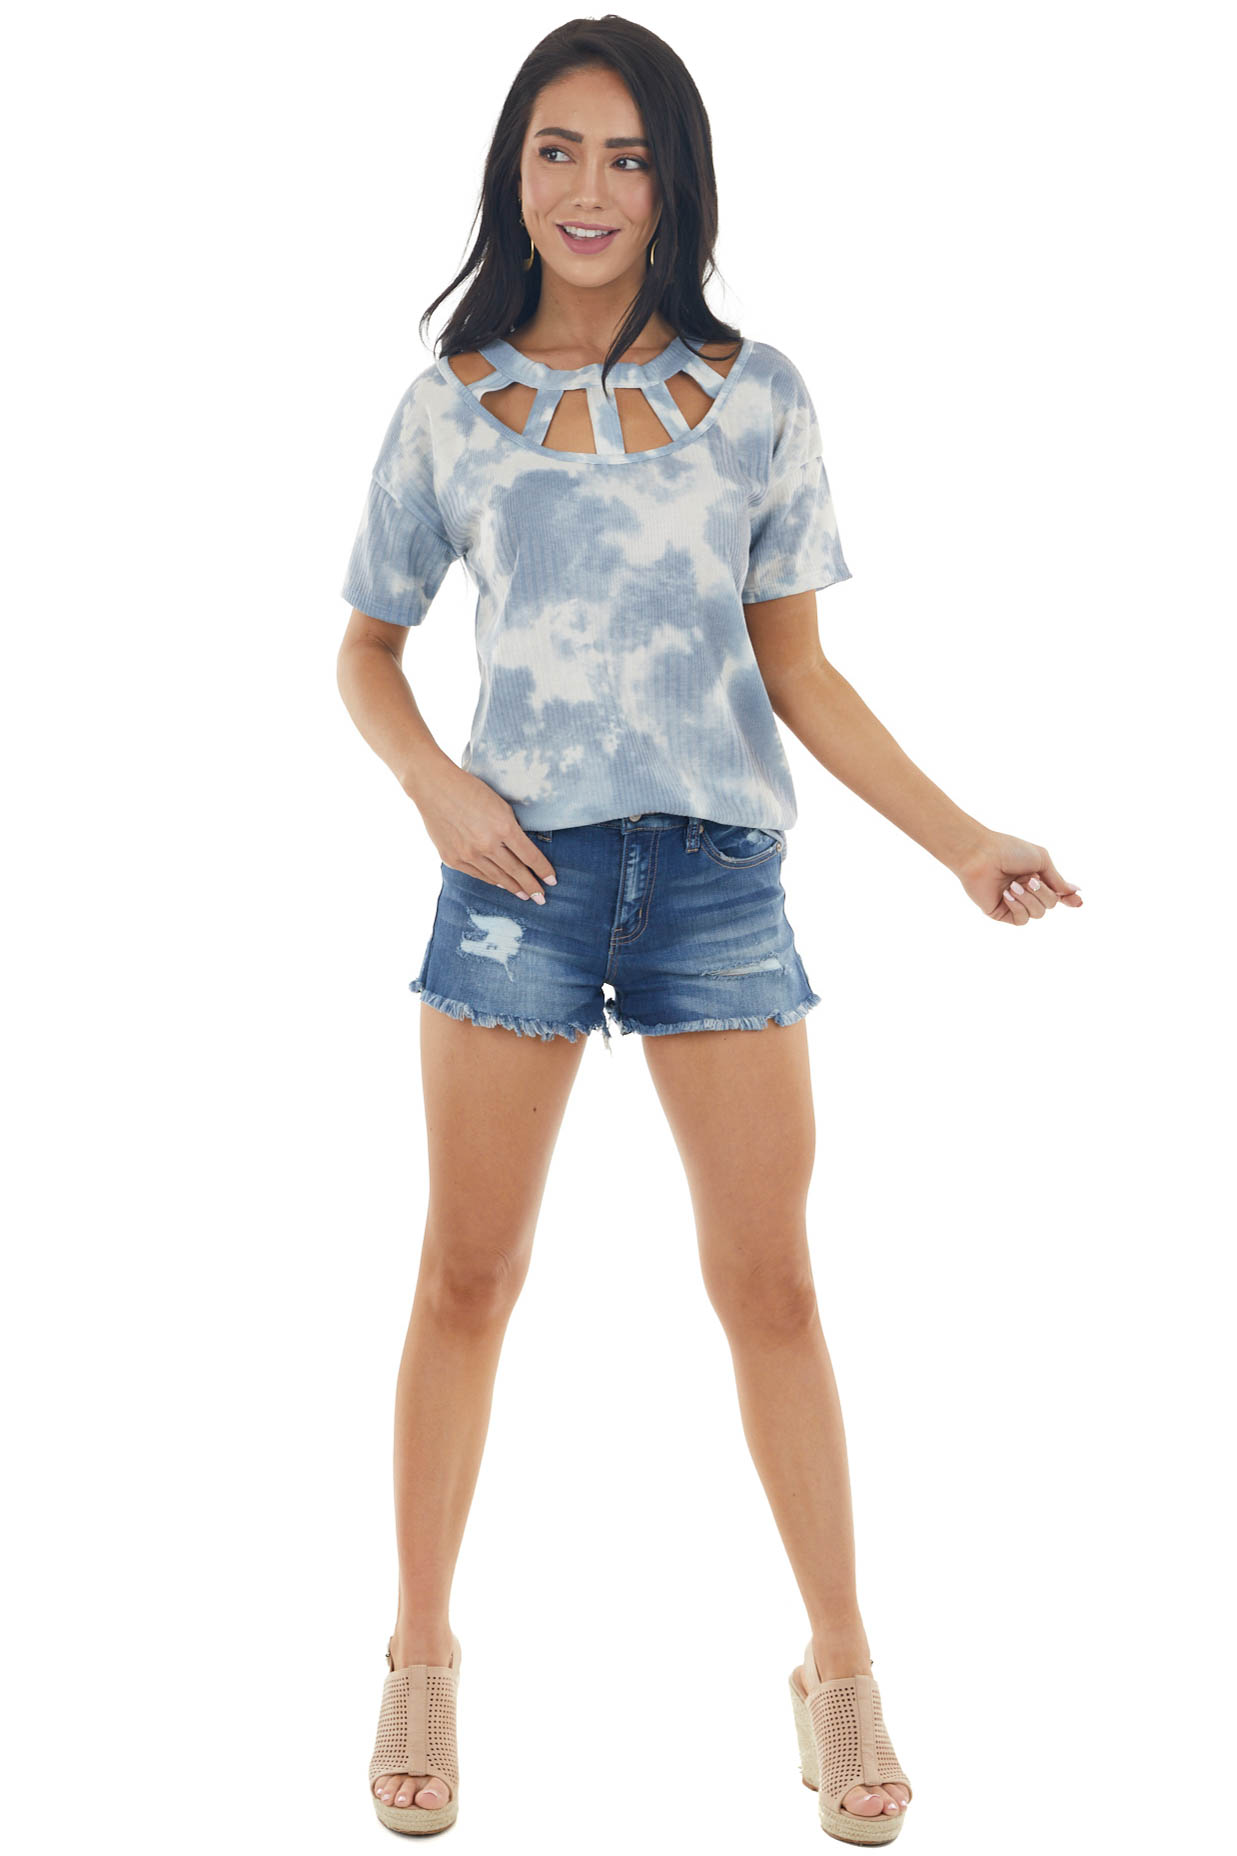 Dusty Blue Tie Dye Short Sleeve Knit Top with Caged Neckline